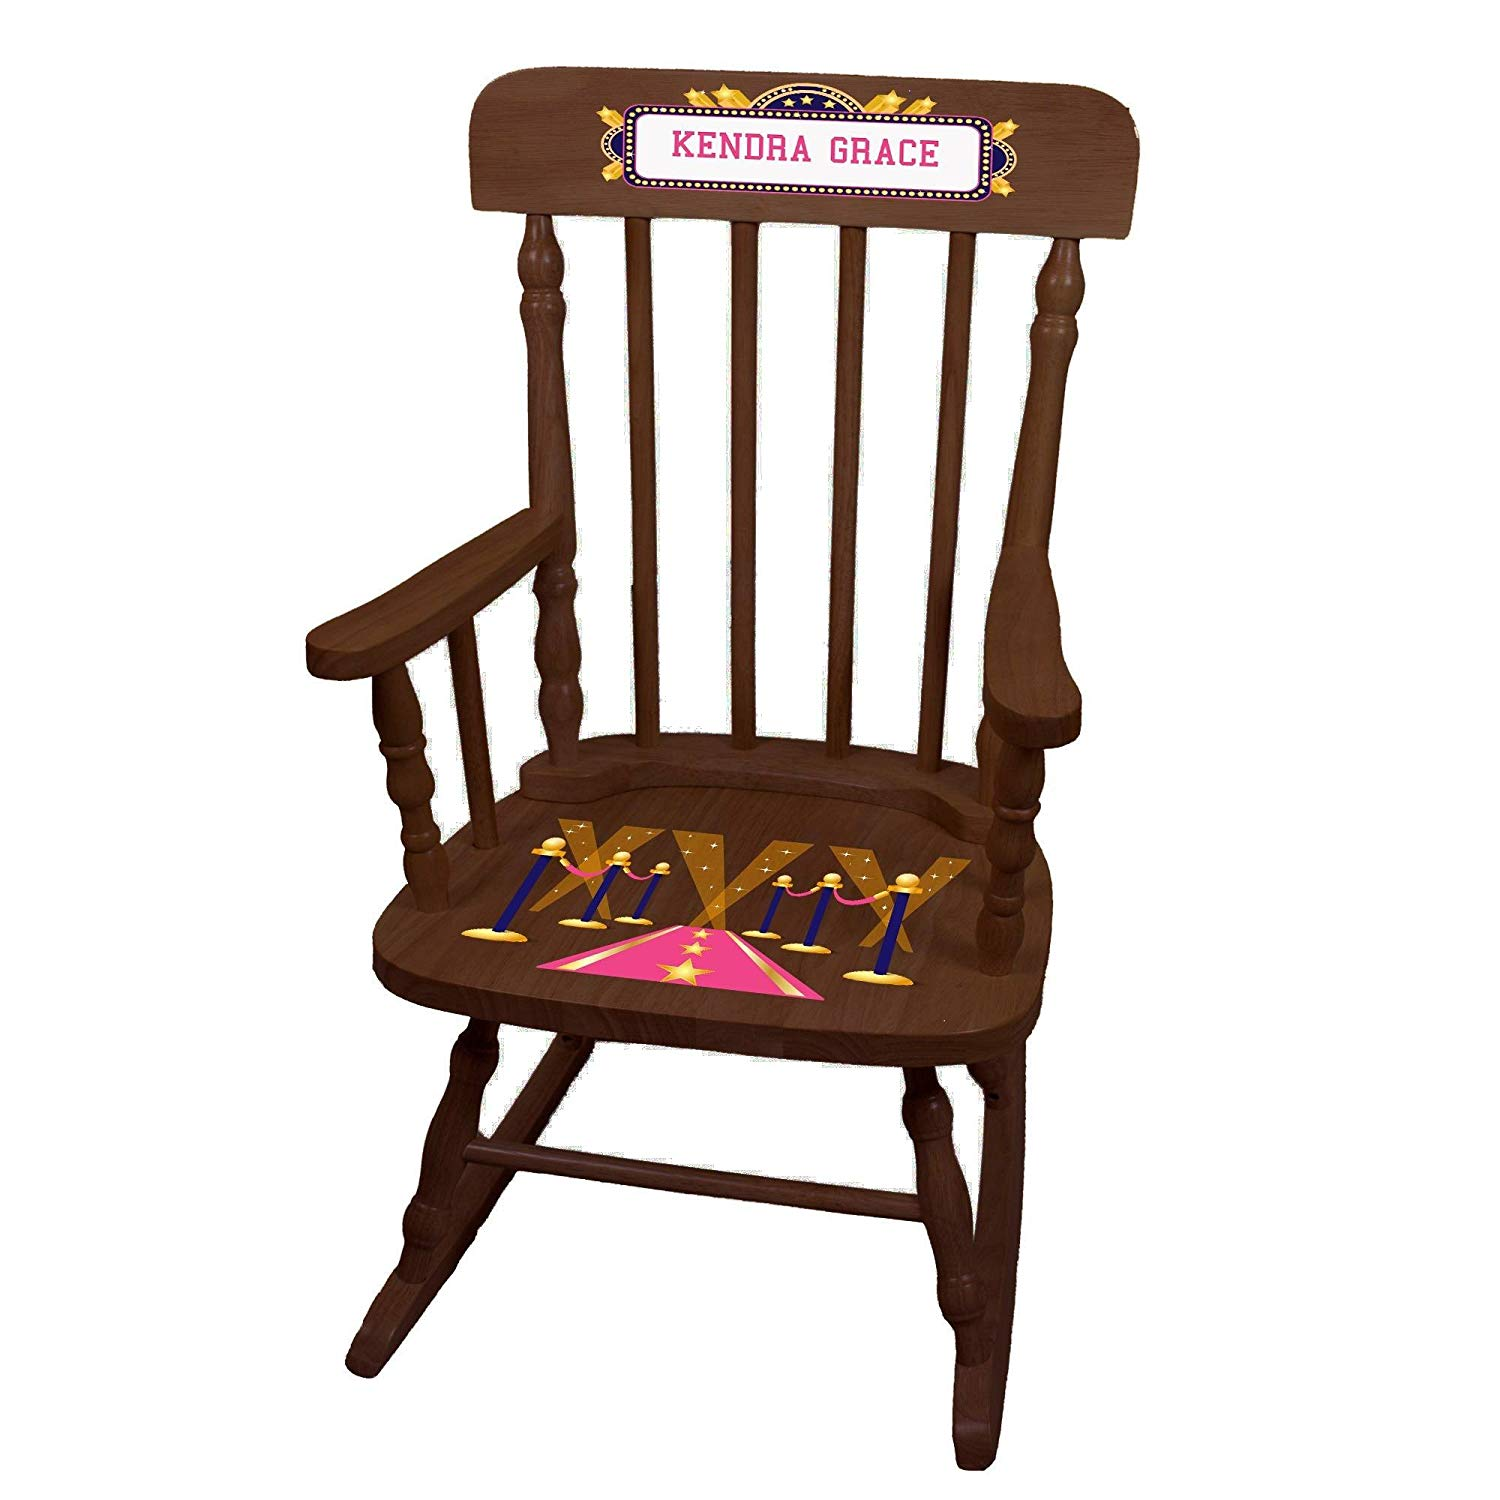 MyBambino Personalized A Star is Born pink Espresso Childrens Rocking Chair